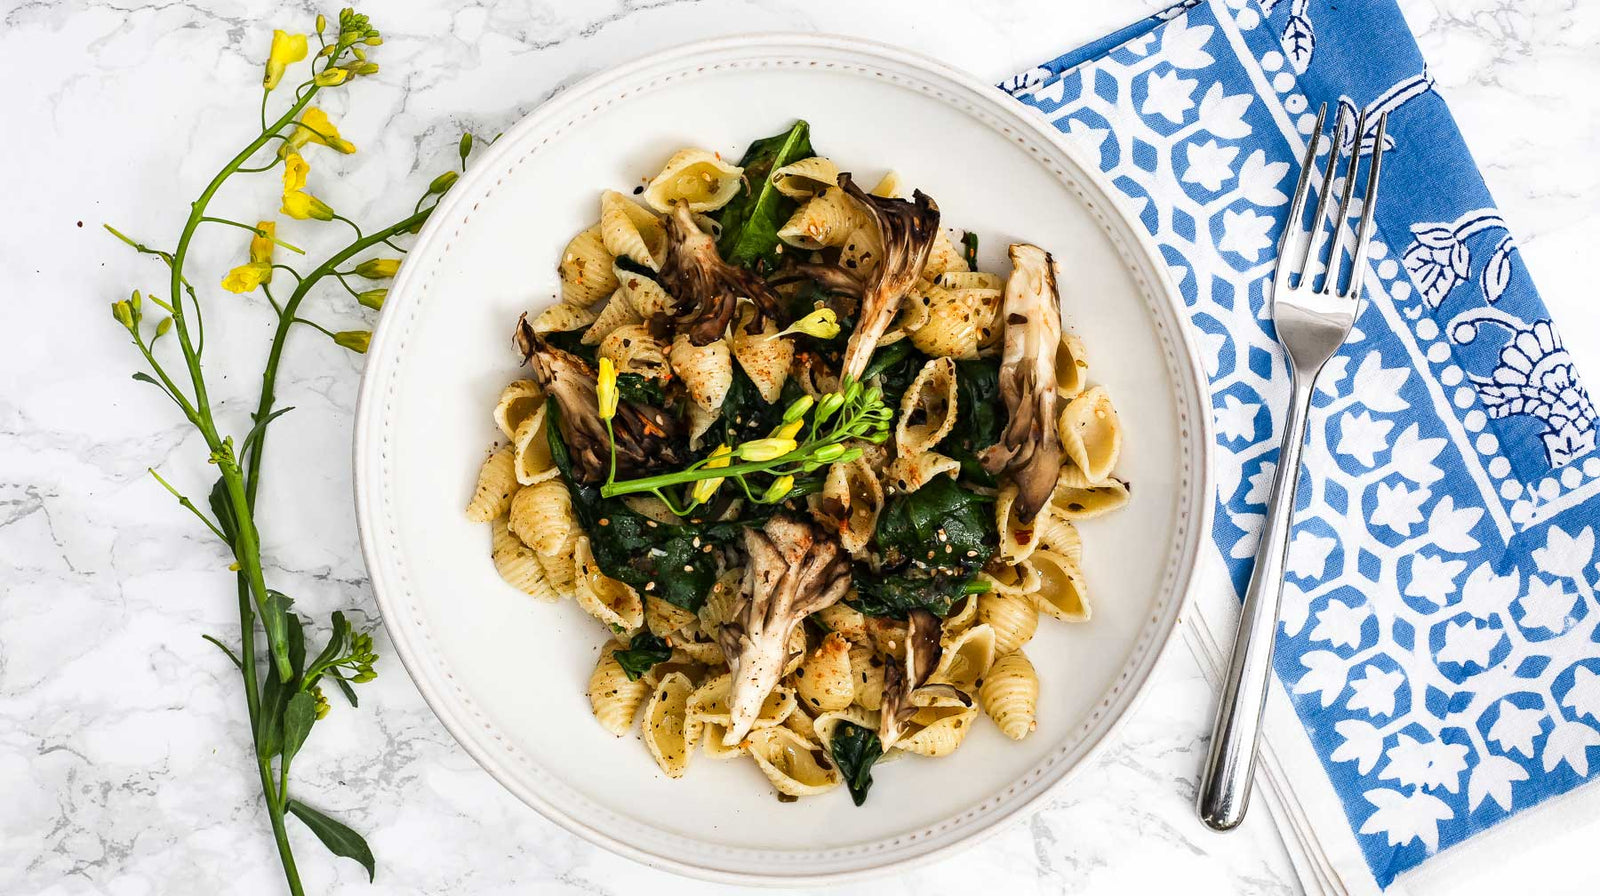 Vegan Pasta With Seaweed And Maitake The Foodocracy